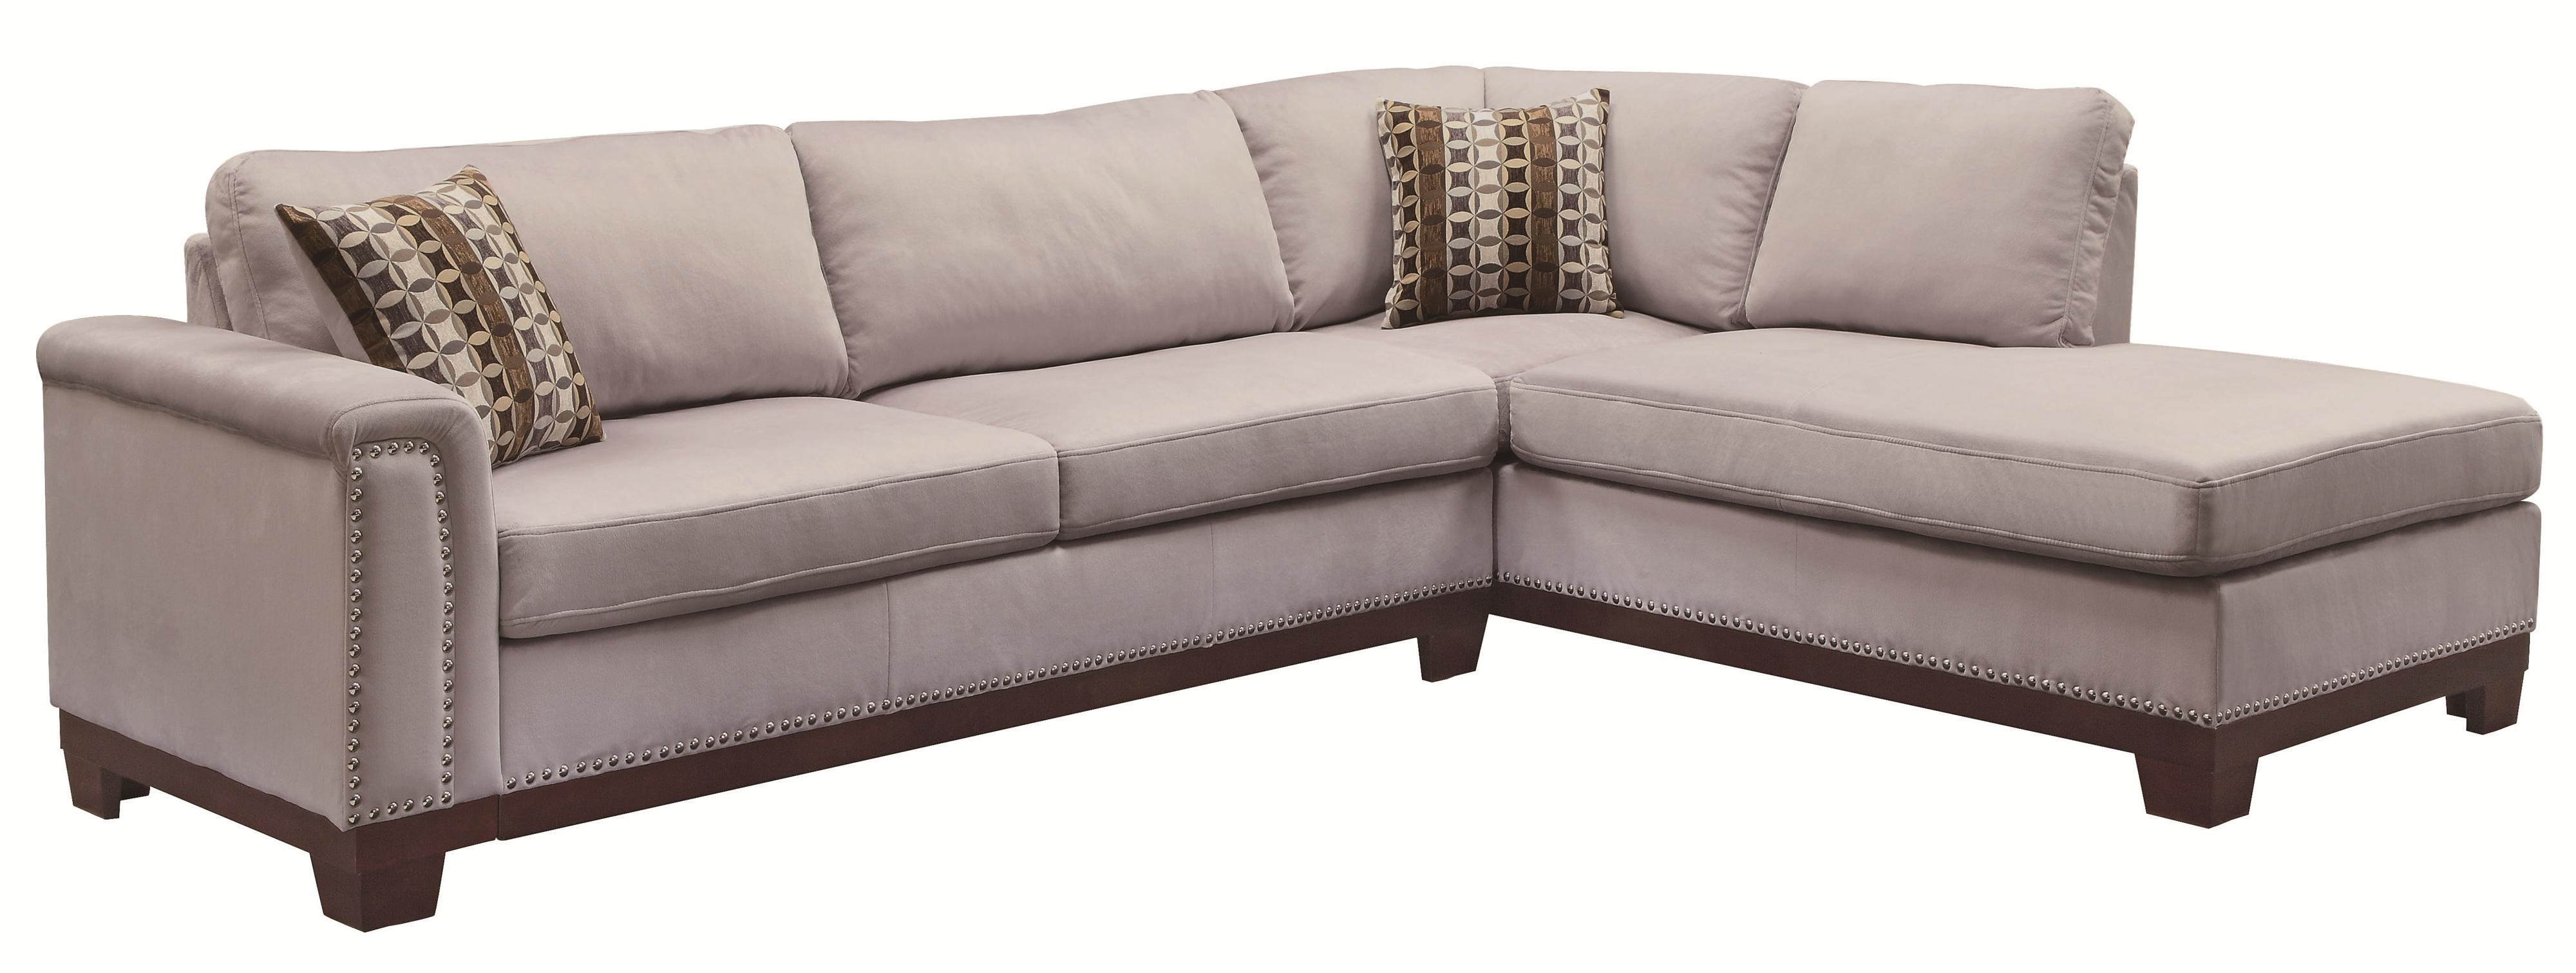 Coaster Mason 503615 Track Arm Reversible Sofa Chaise Sectional For Newest Sofas With Chaise (View 3 of 15)